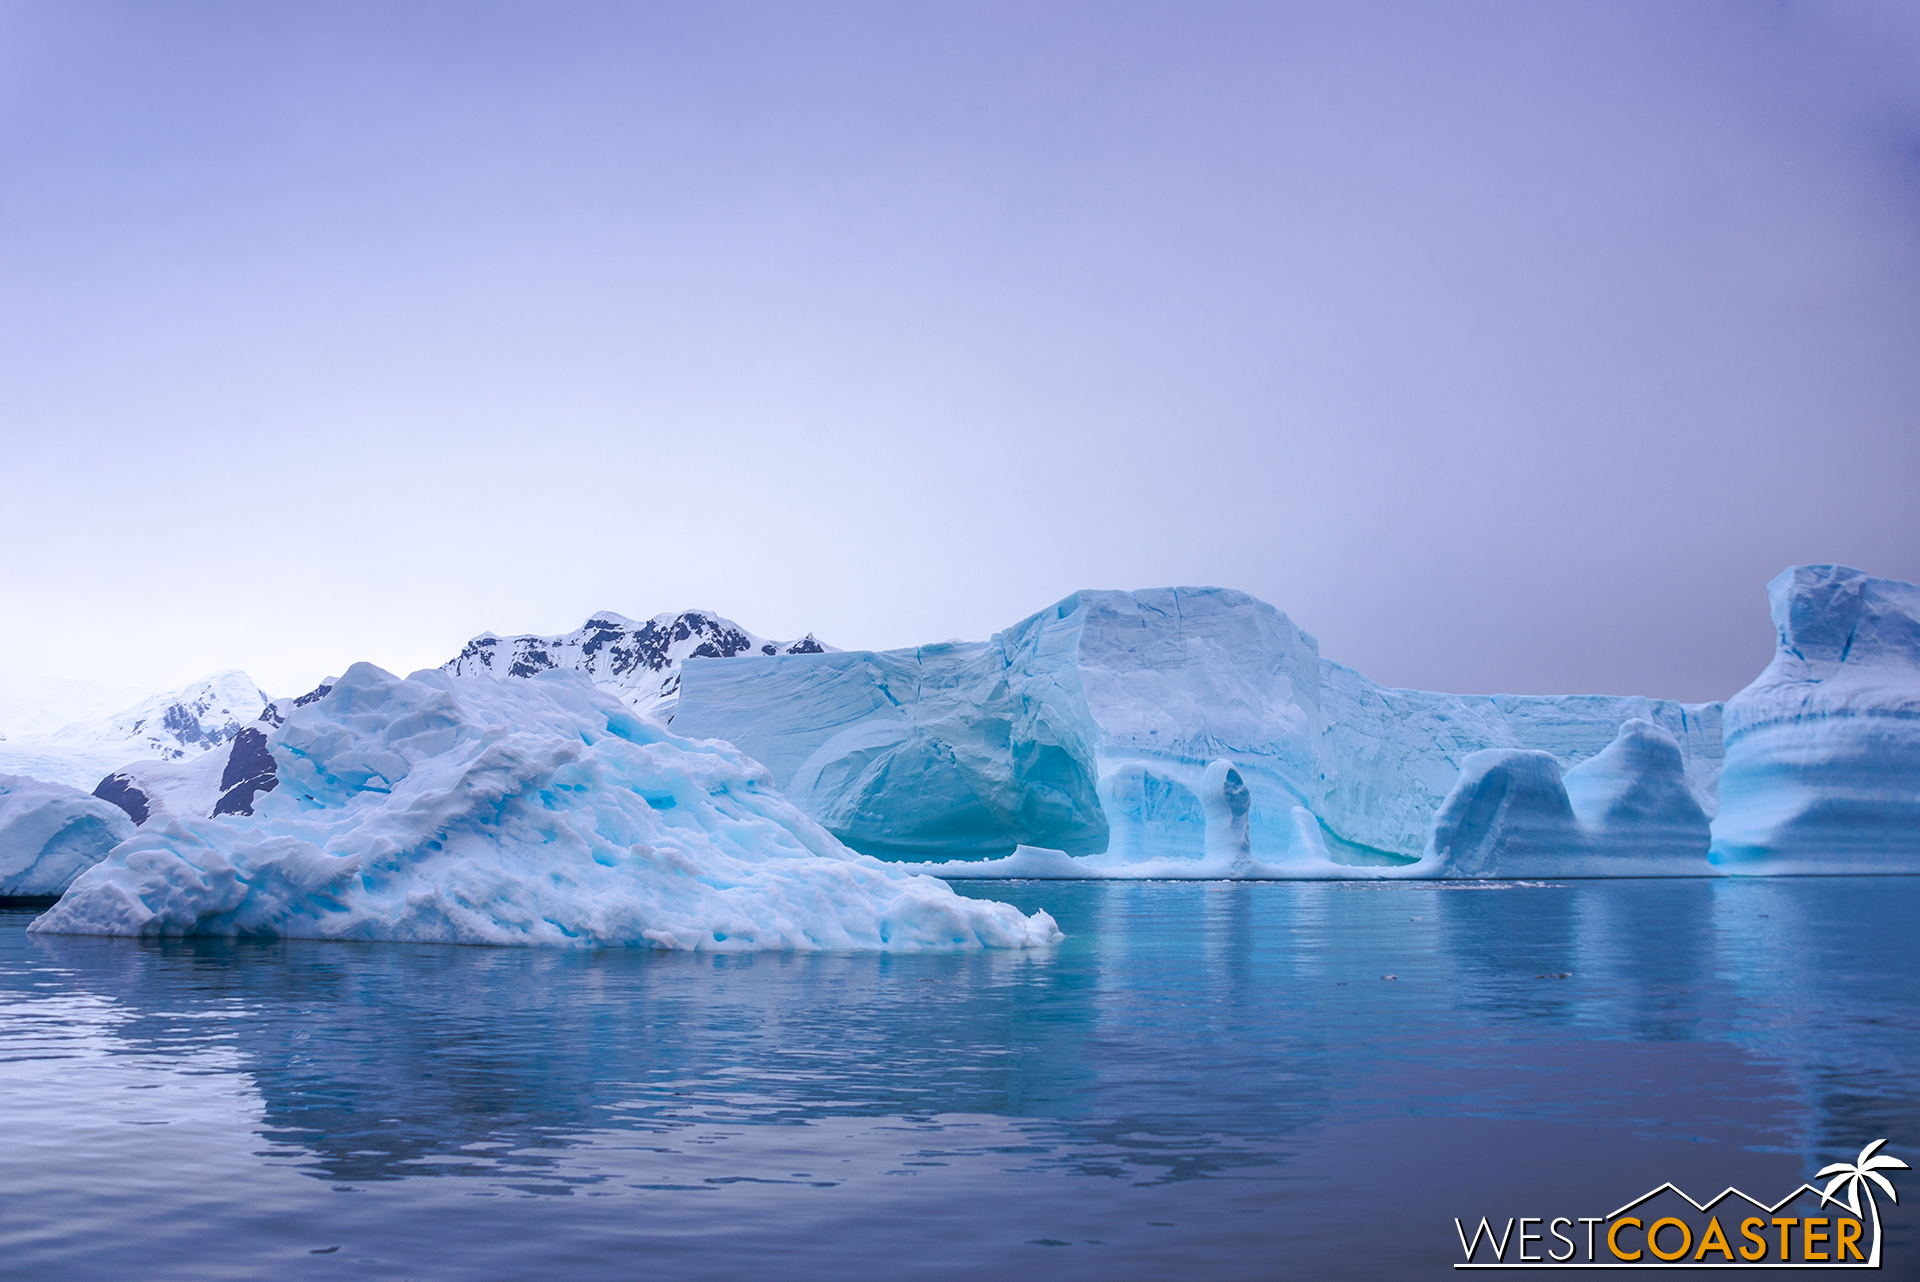 The spectacular and still waters of Pléneau Bay reflect the cool hues of the floating ice all around.